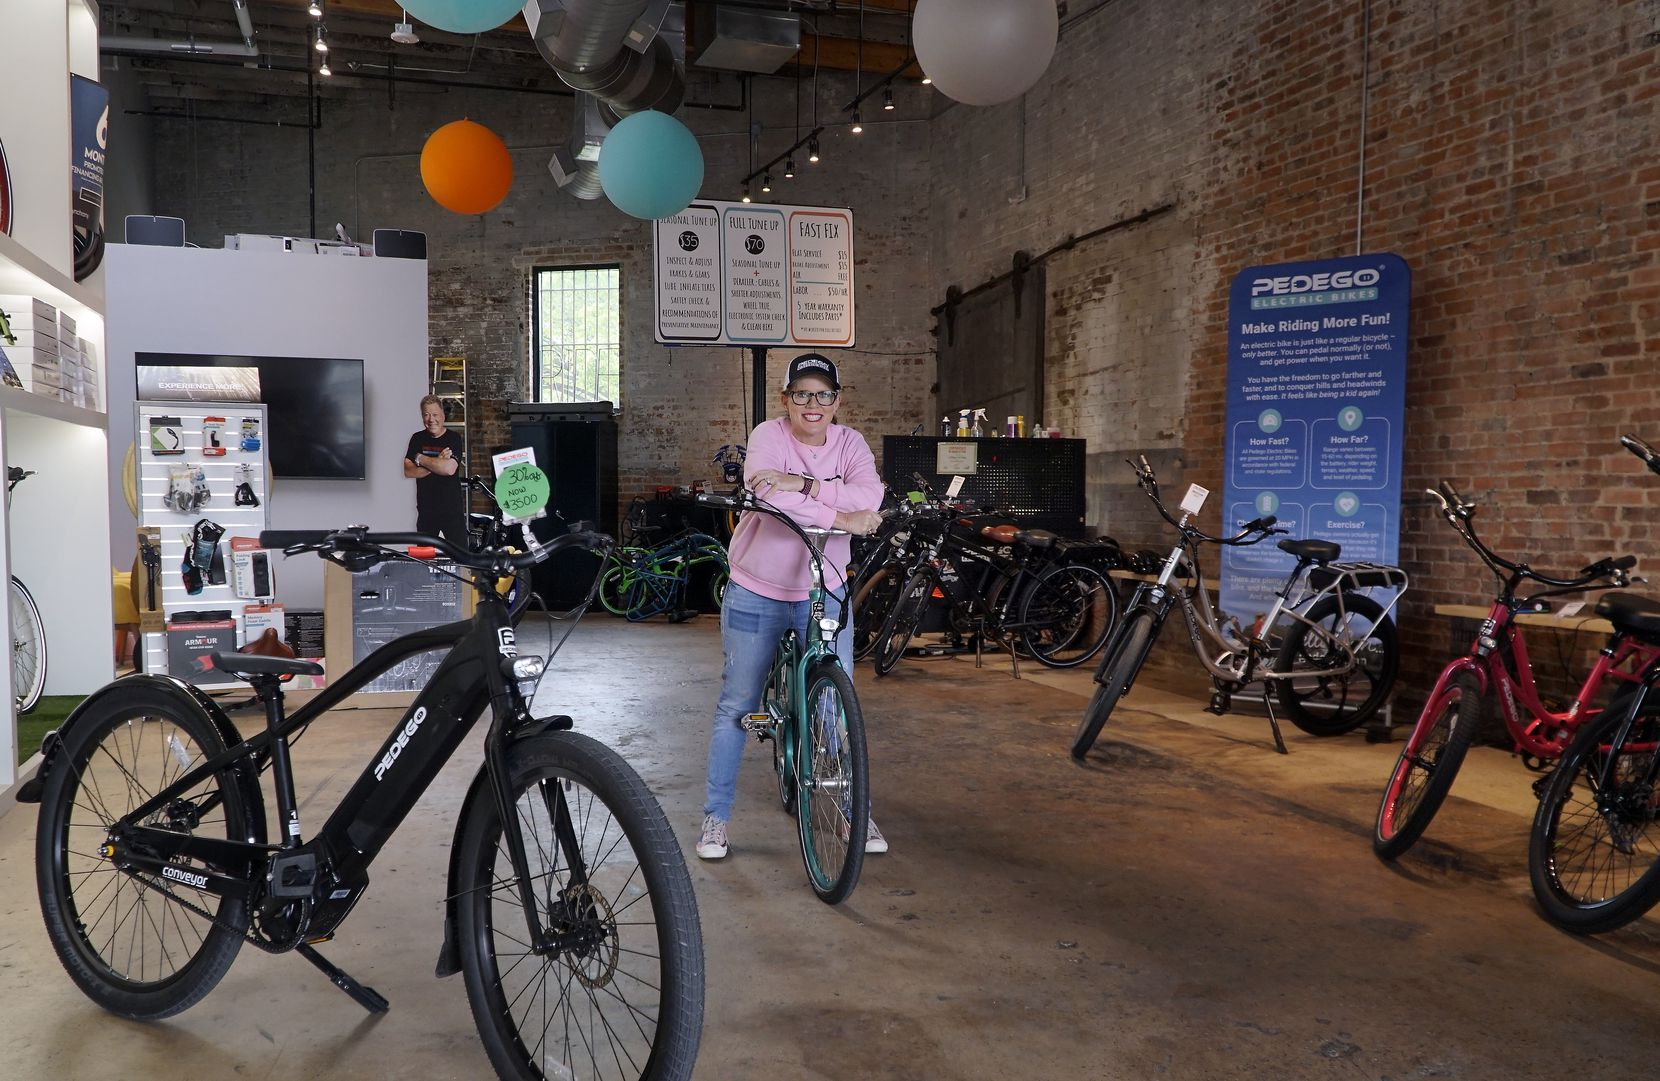 BK Snyder, owner of a Pedego electric bike franchise in Dallas, says interest in this new style of bicycle is increasing.